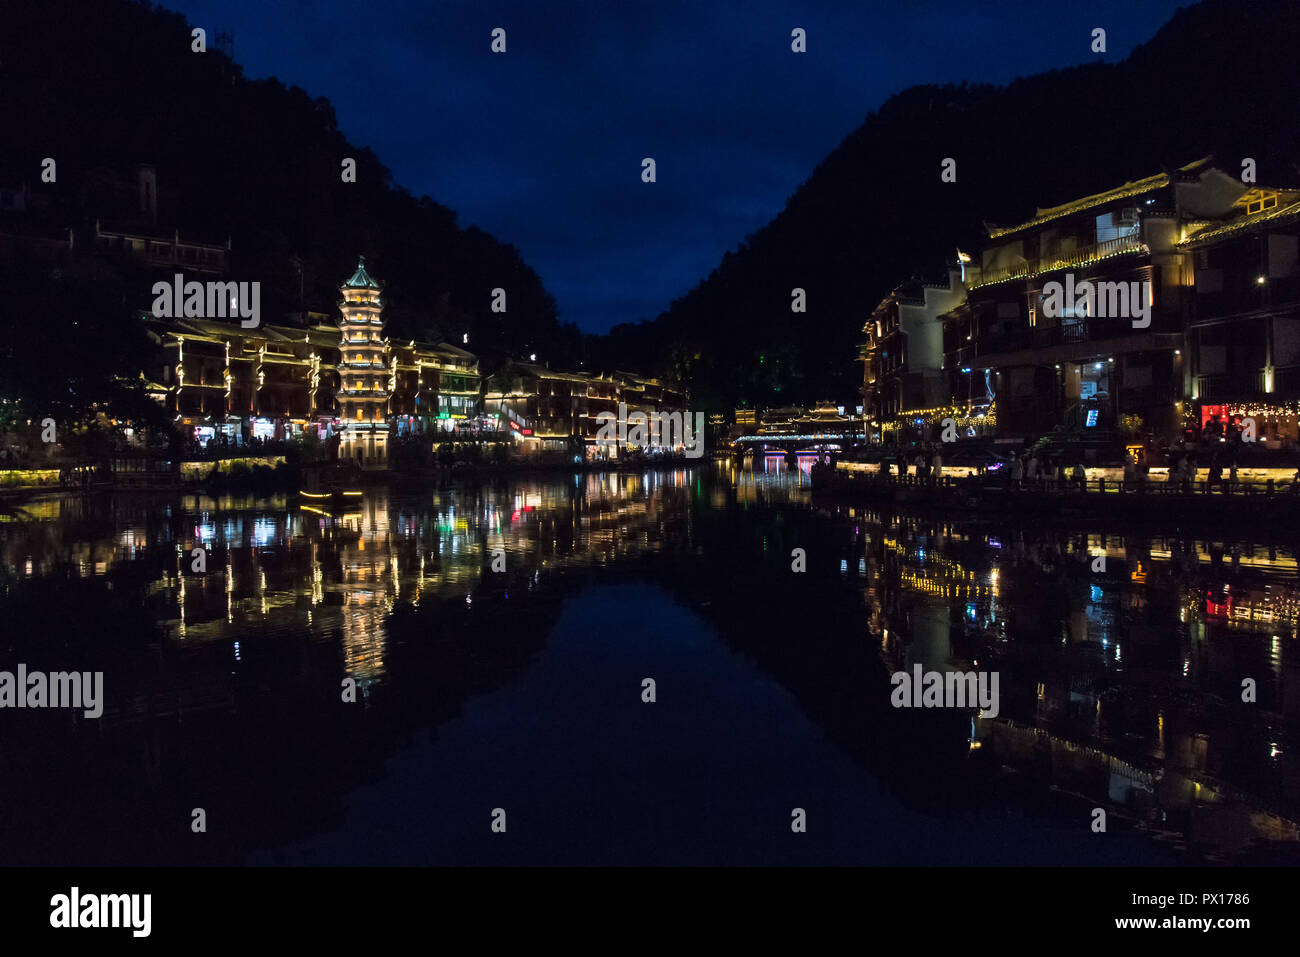 FENGHUANG, HUNAN, CHINA - 8JUL2018:  Night-time view of the Tuojiang River and the Wanming Pagoda. - Stock Image